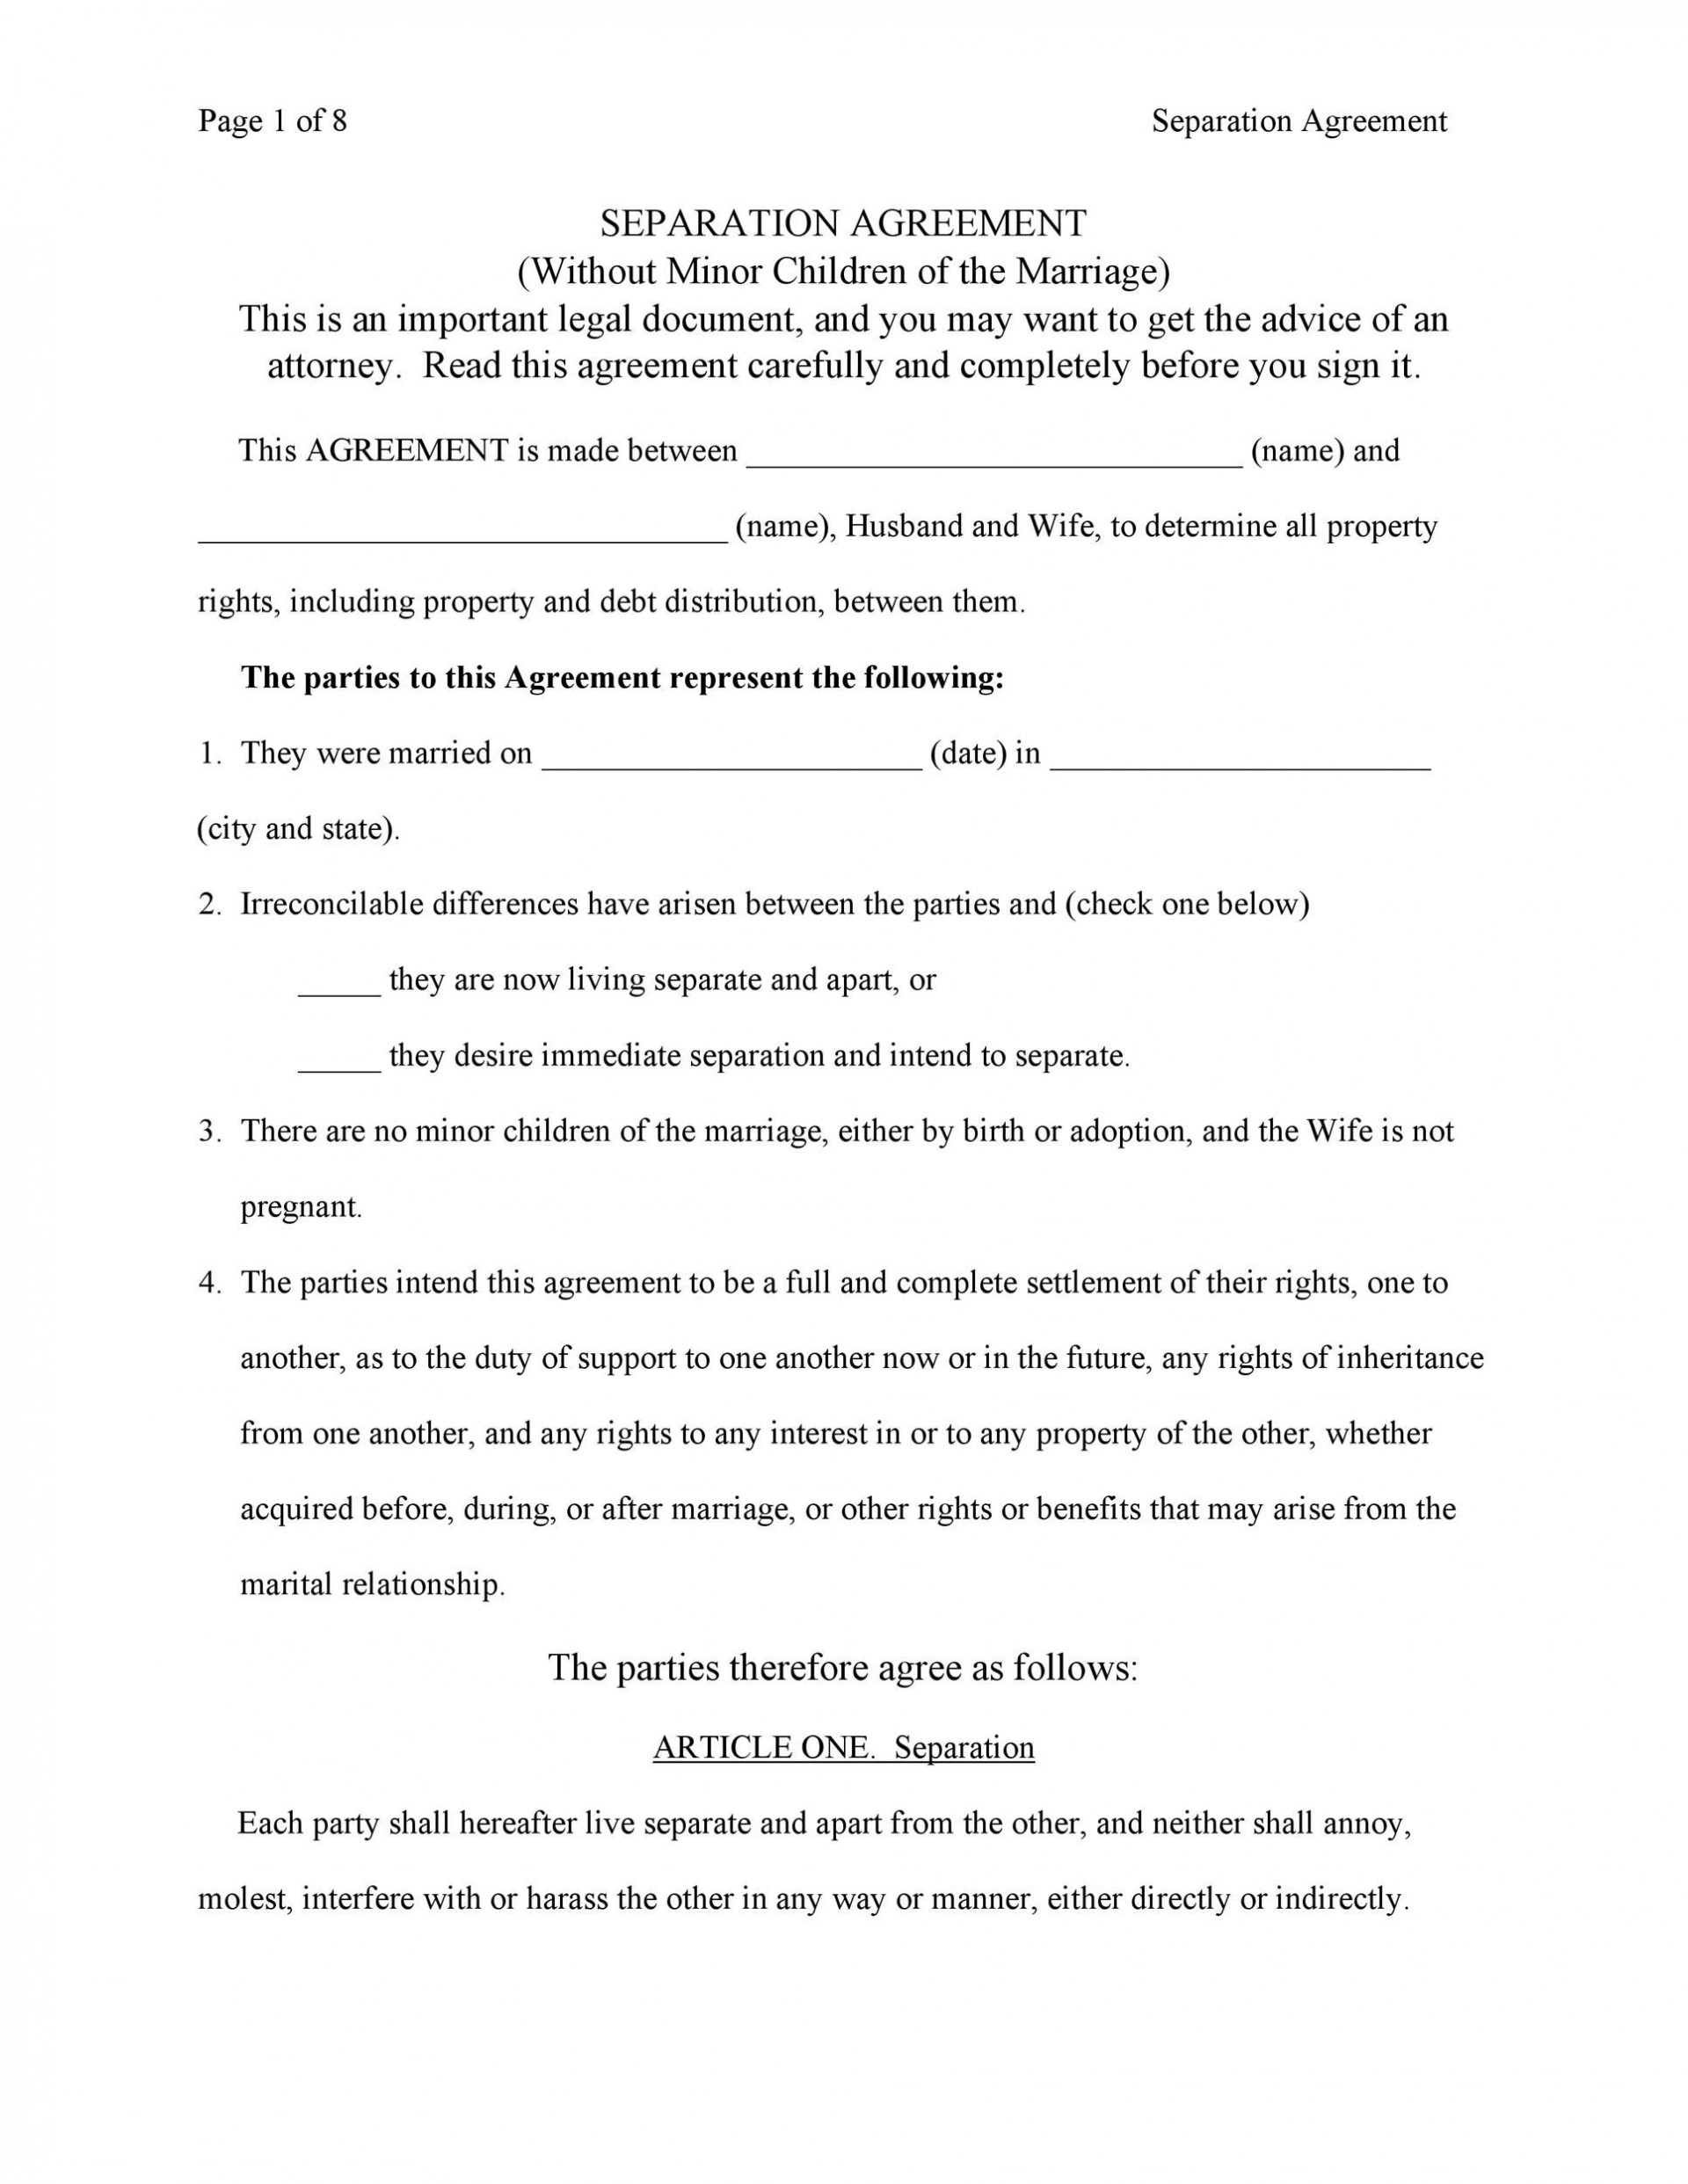 007 Fascinating Virginia Separation Agreement Template Highest Clarity  Marital Marriage1920